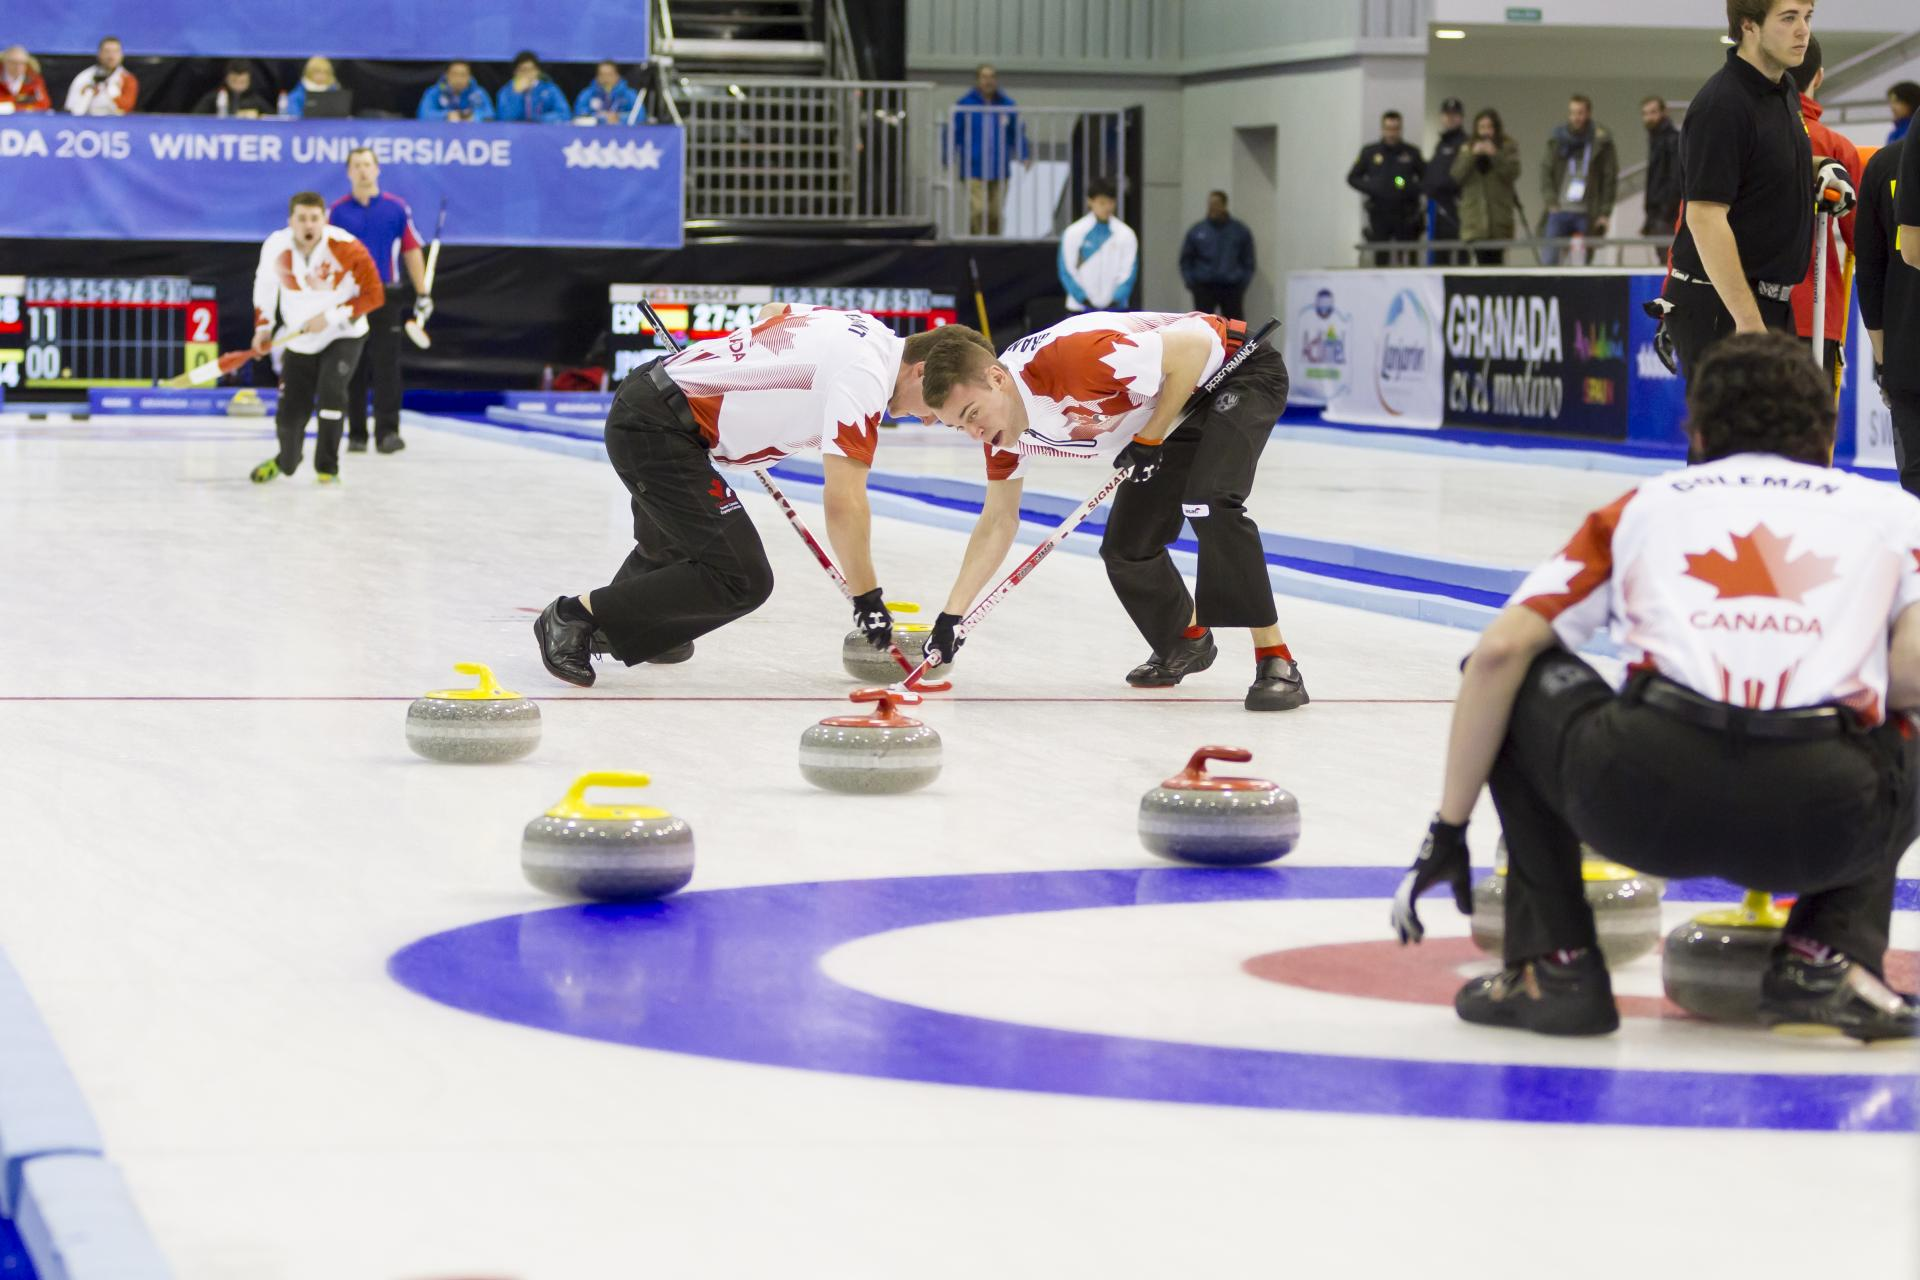 Curling Canadá